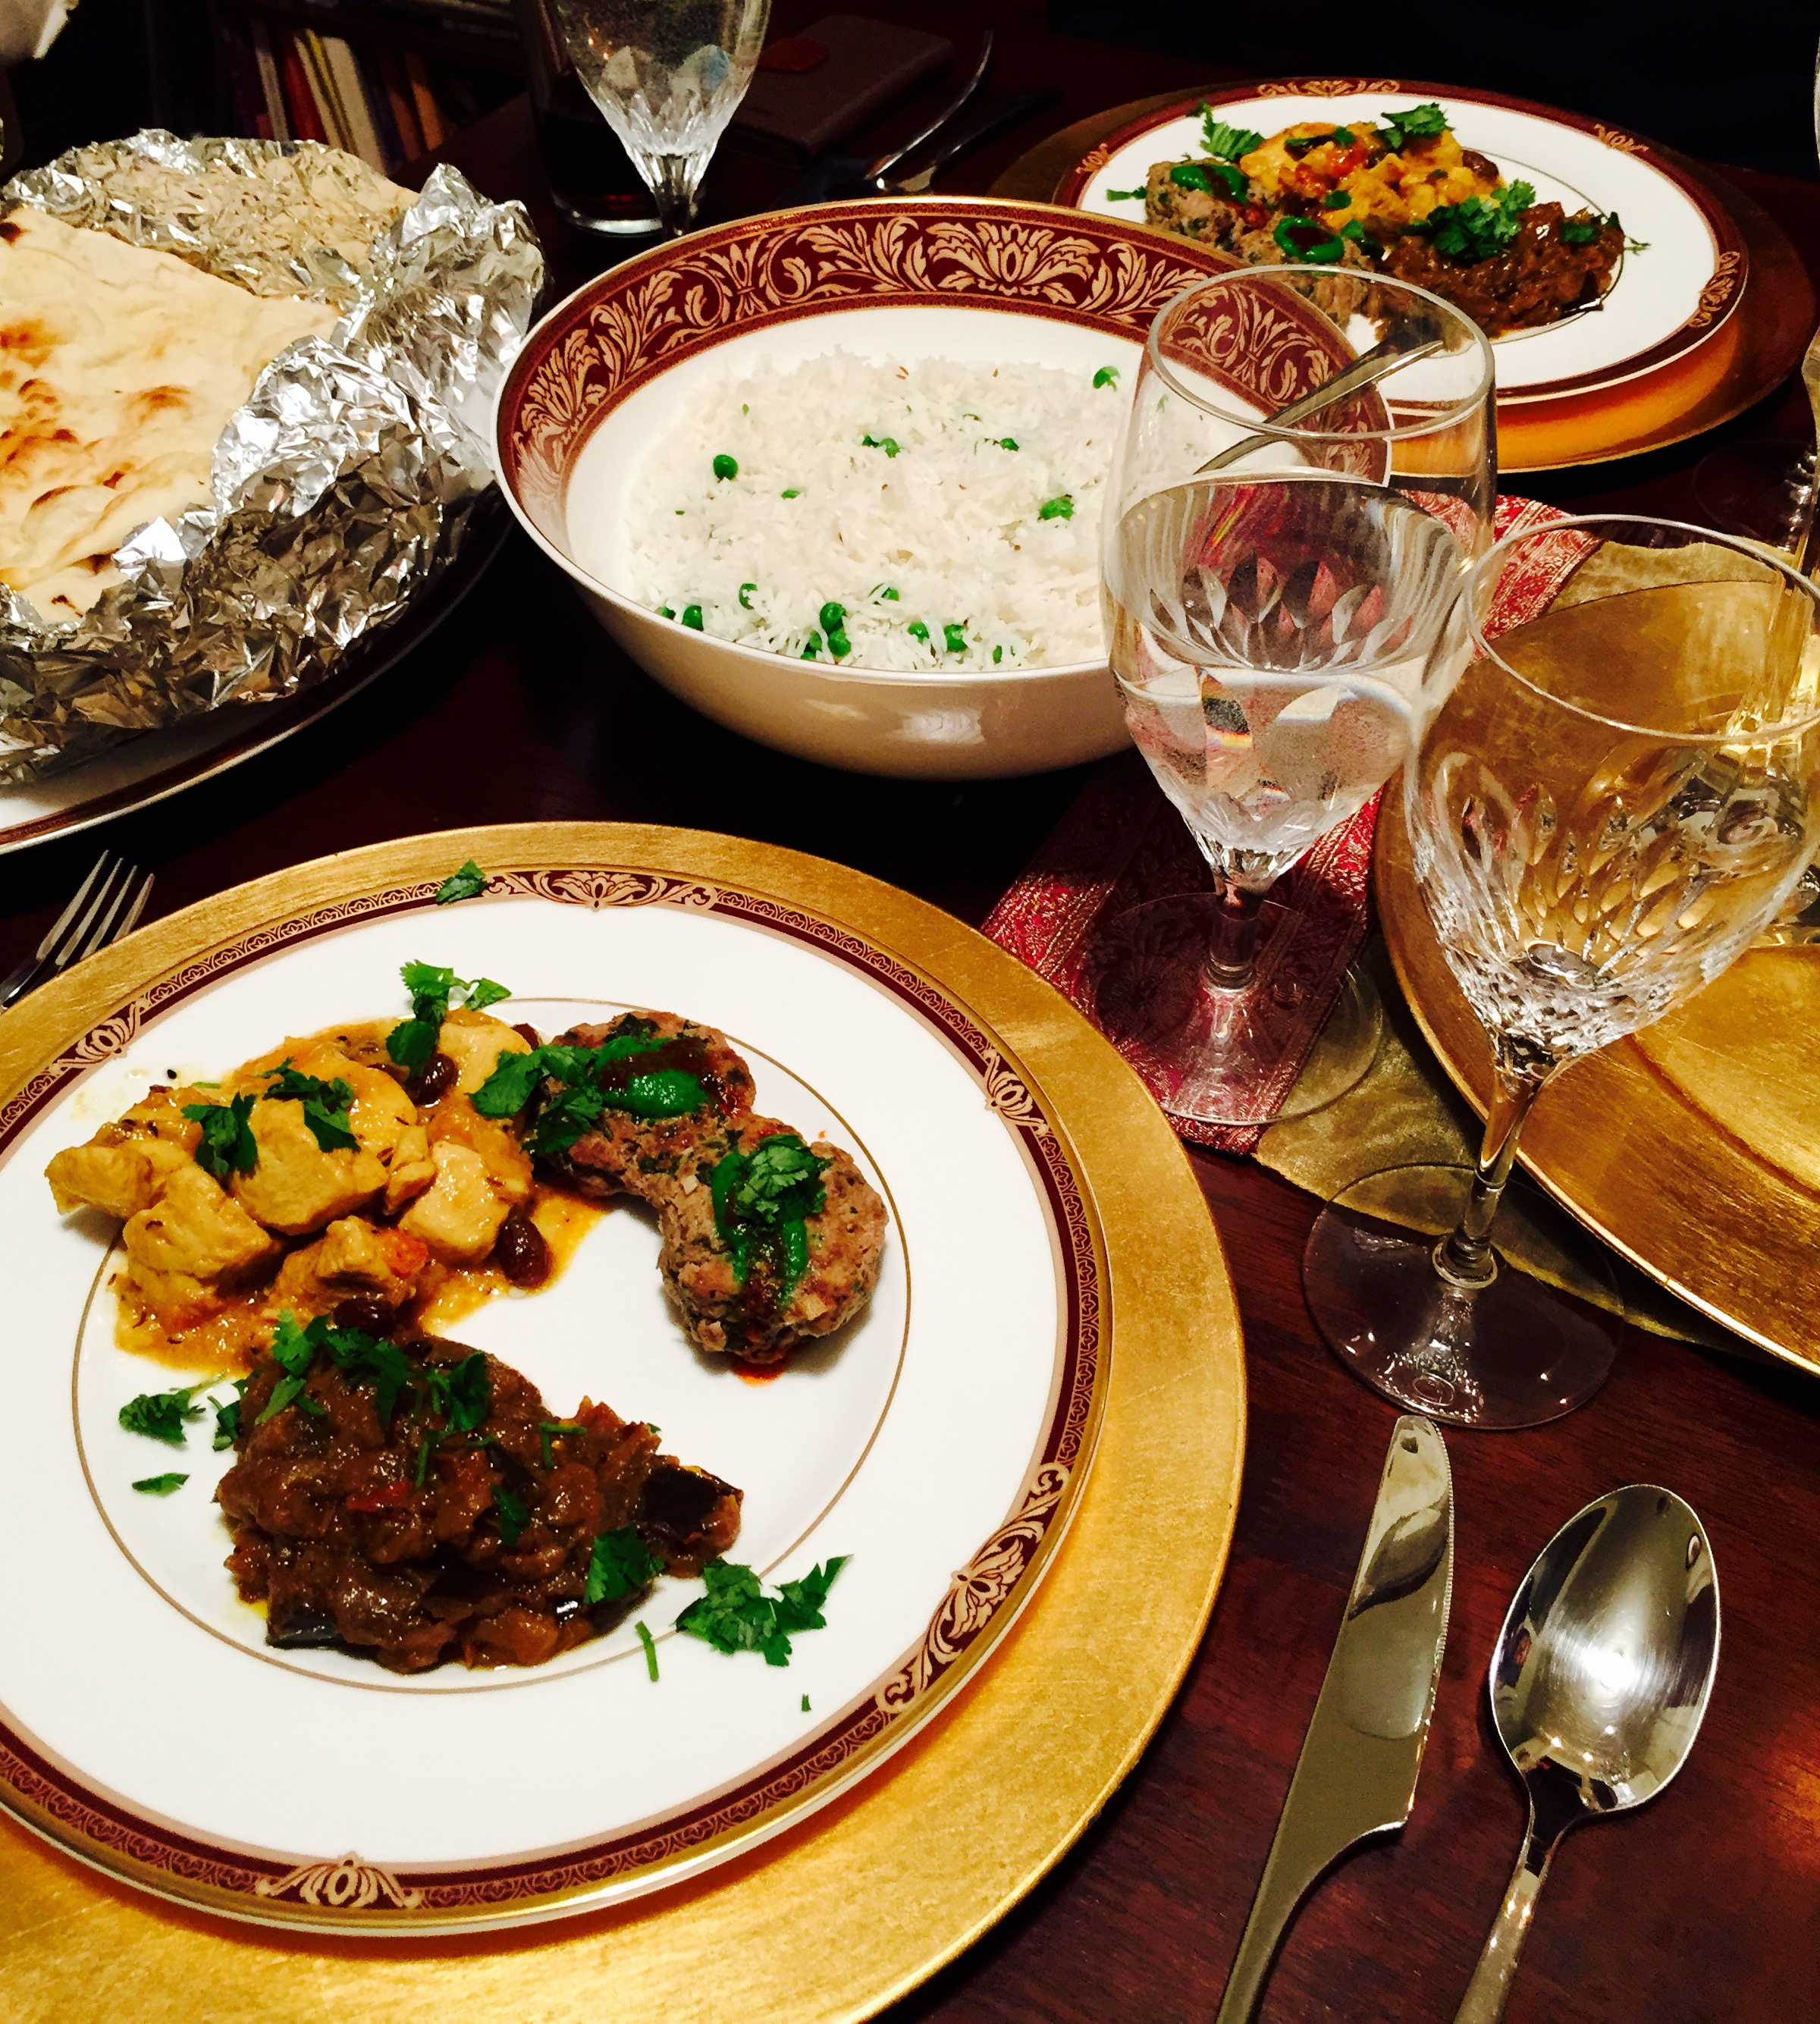 Hosting A Dinner Party hosting an elegant indian dinner party | big apple curry